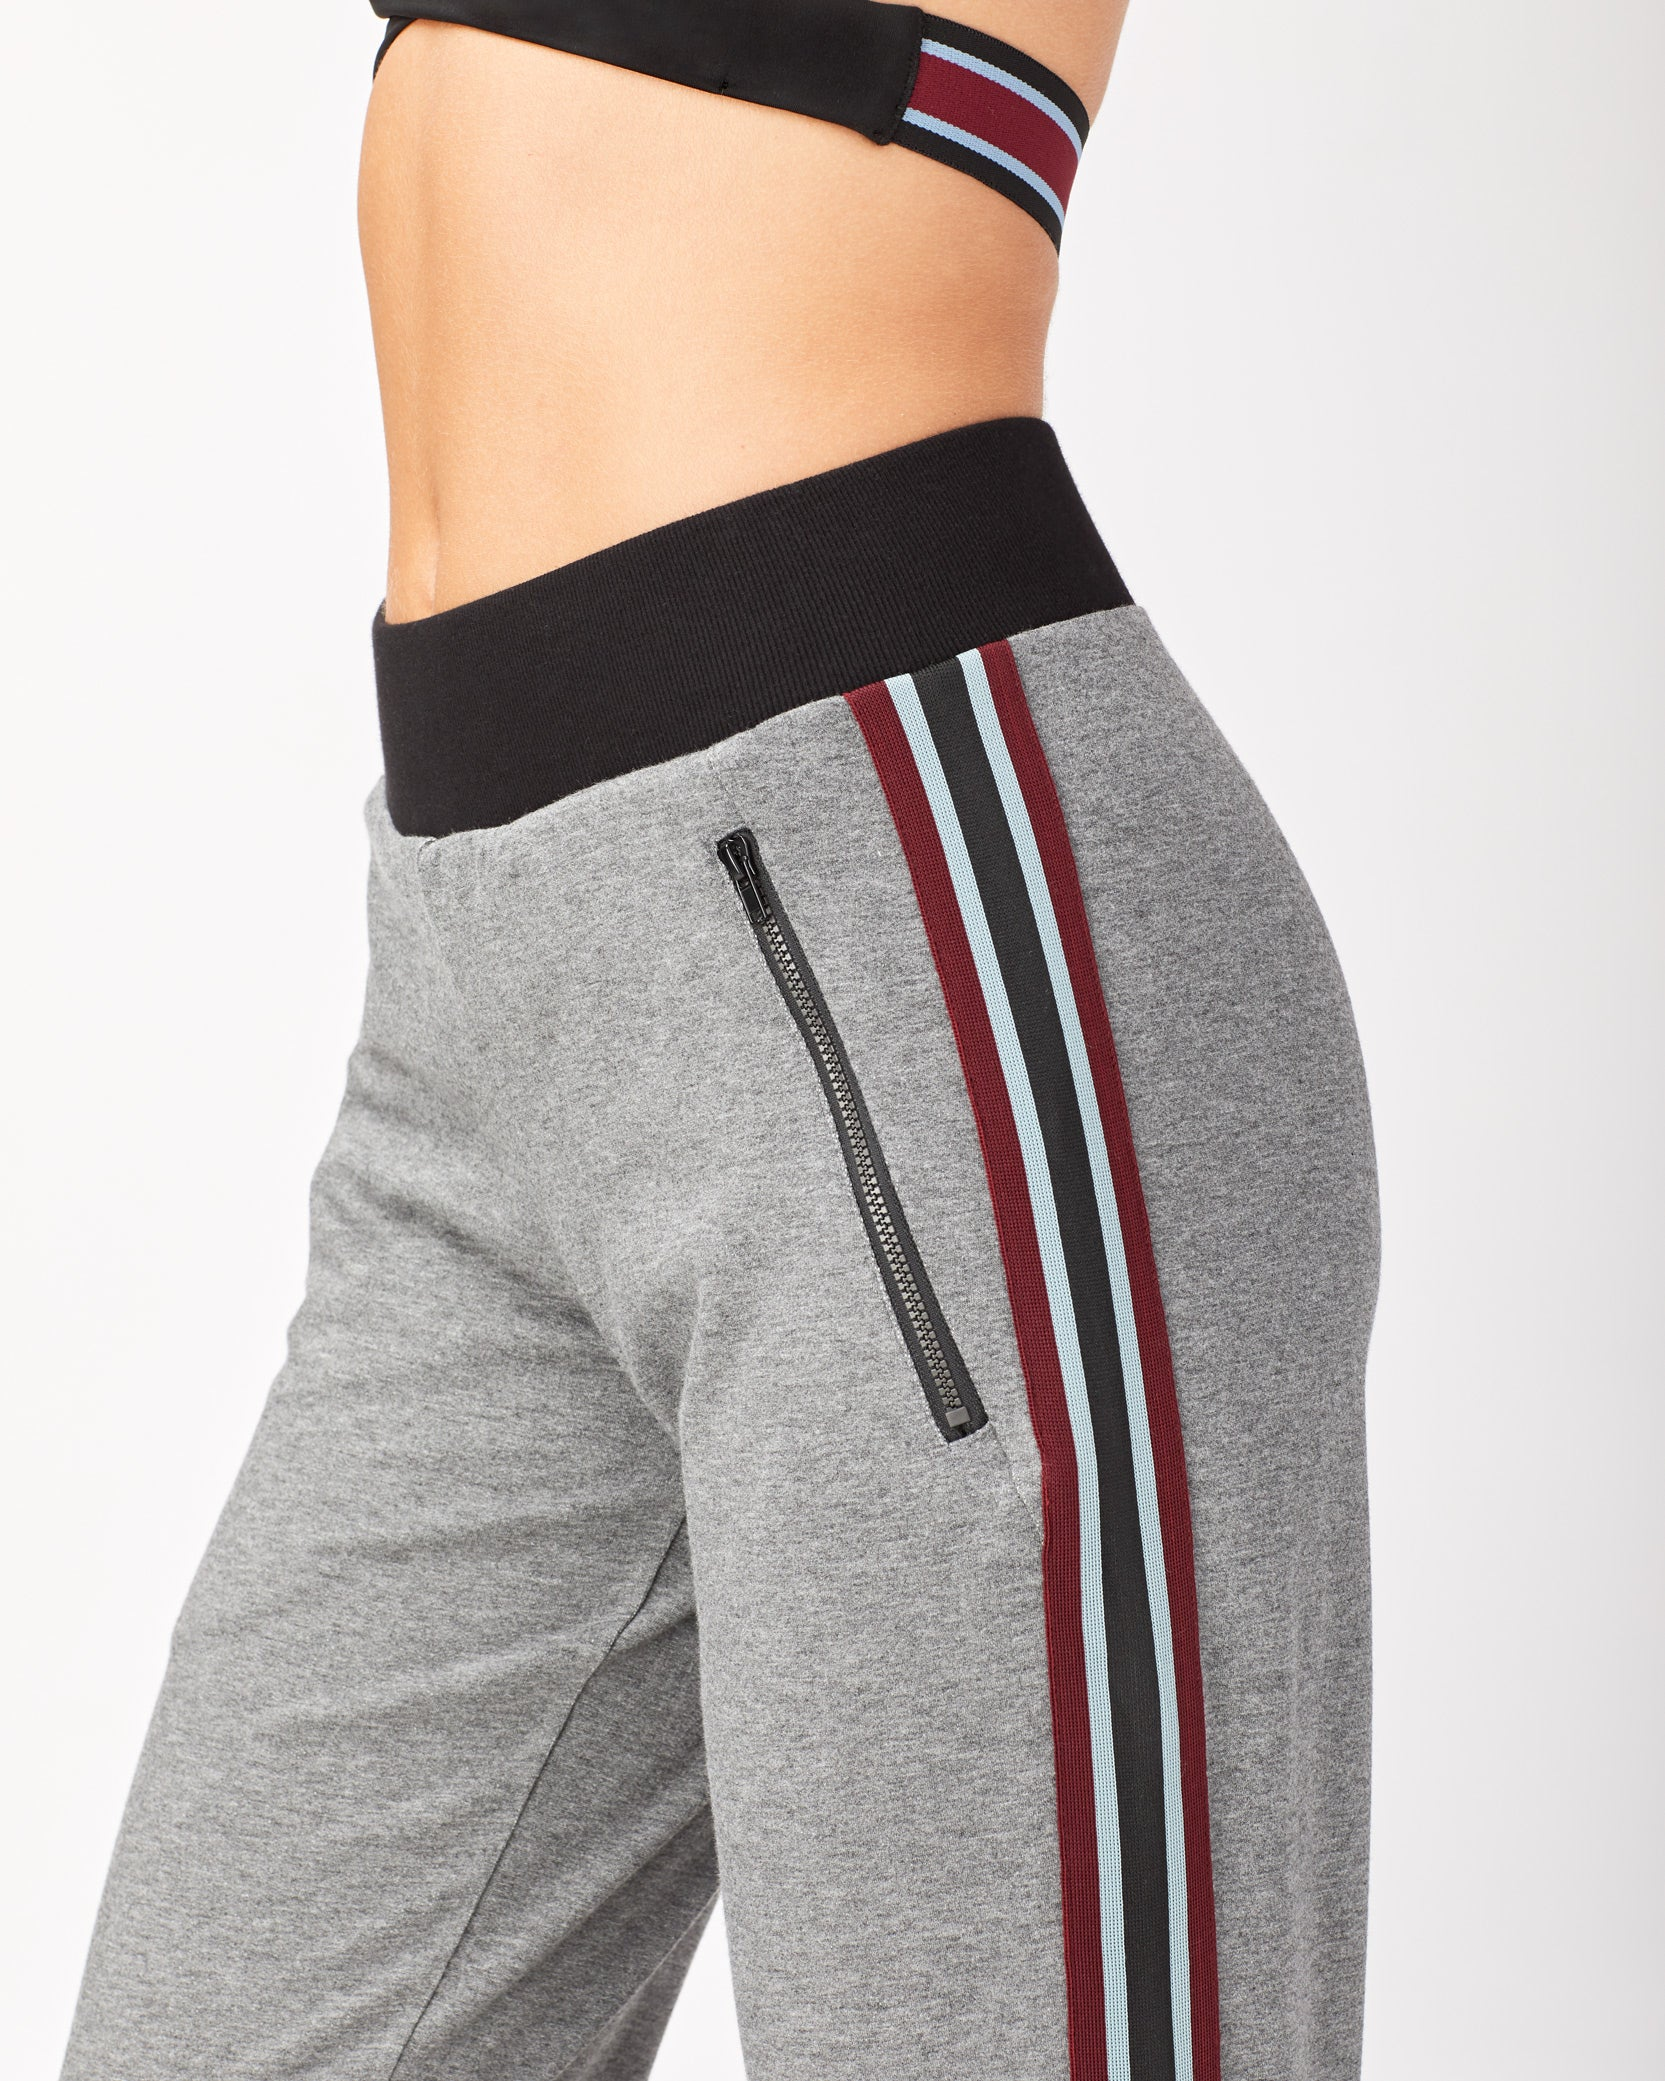 turbo-trackpant-charcoal-grey